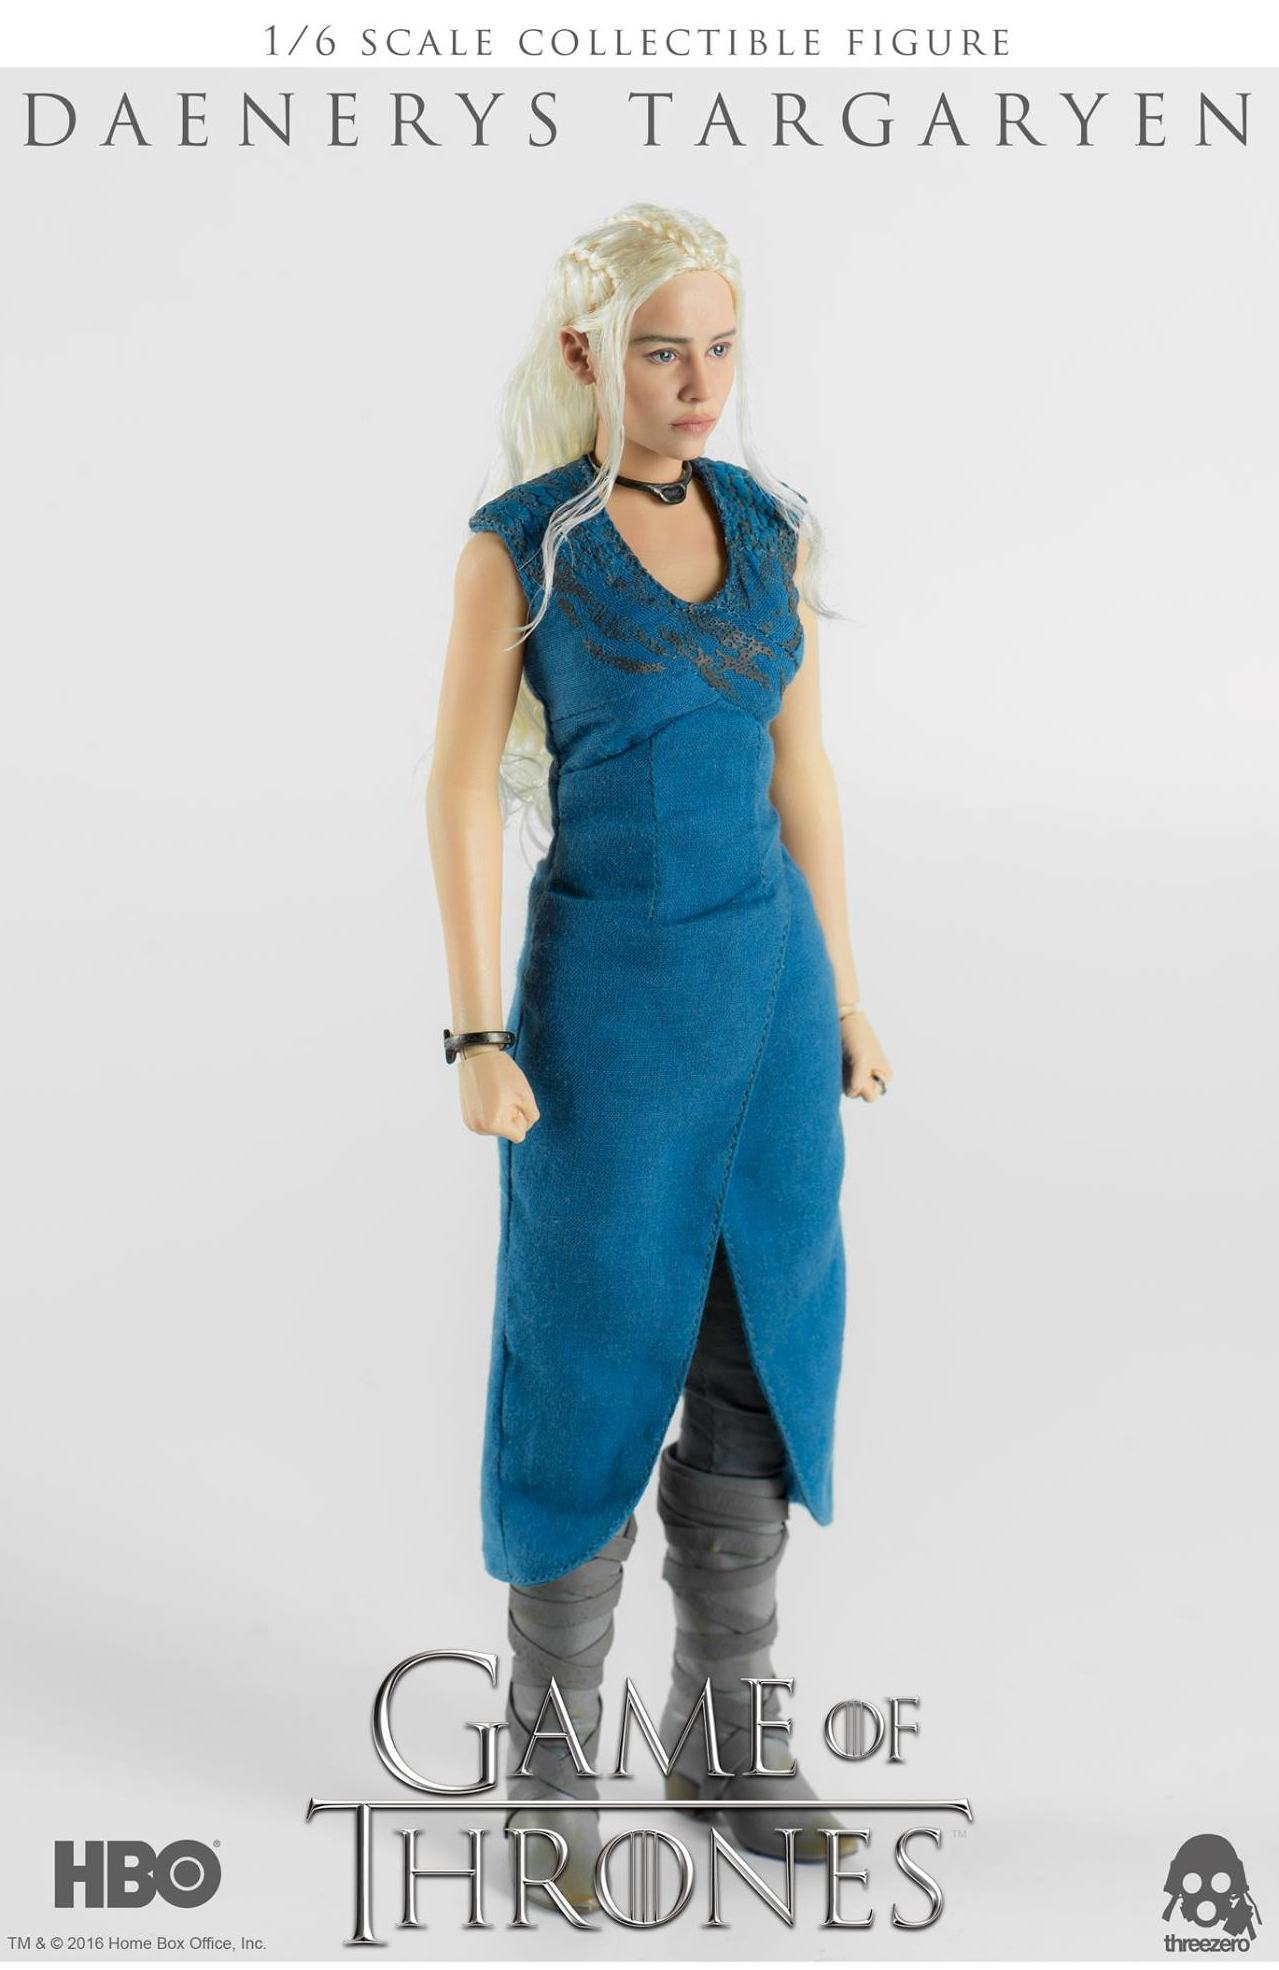 action-figure-perfeita-game-of-thrones-daenerys-targaryen-threezero-03